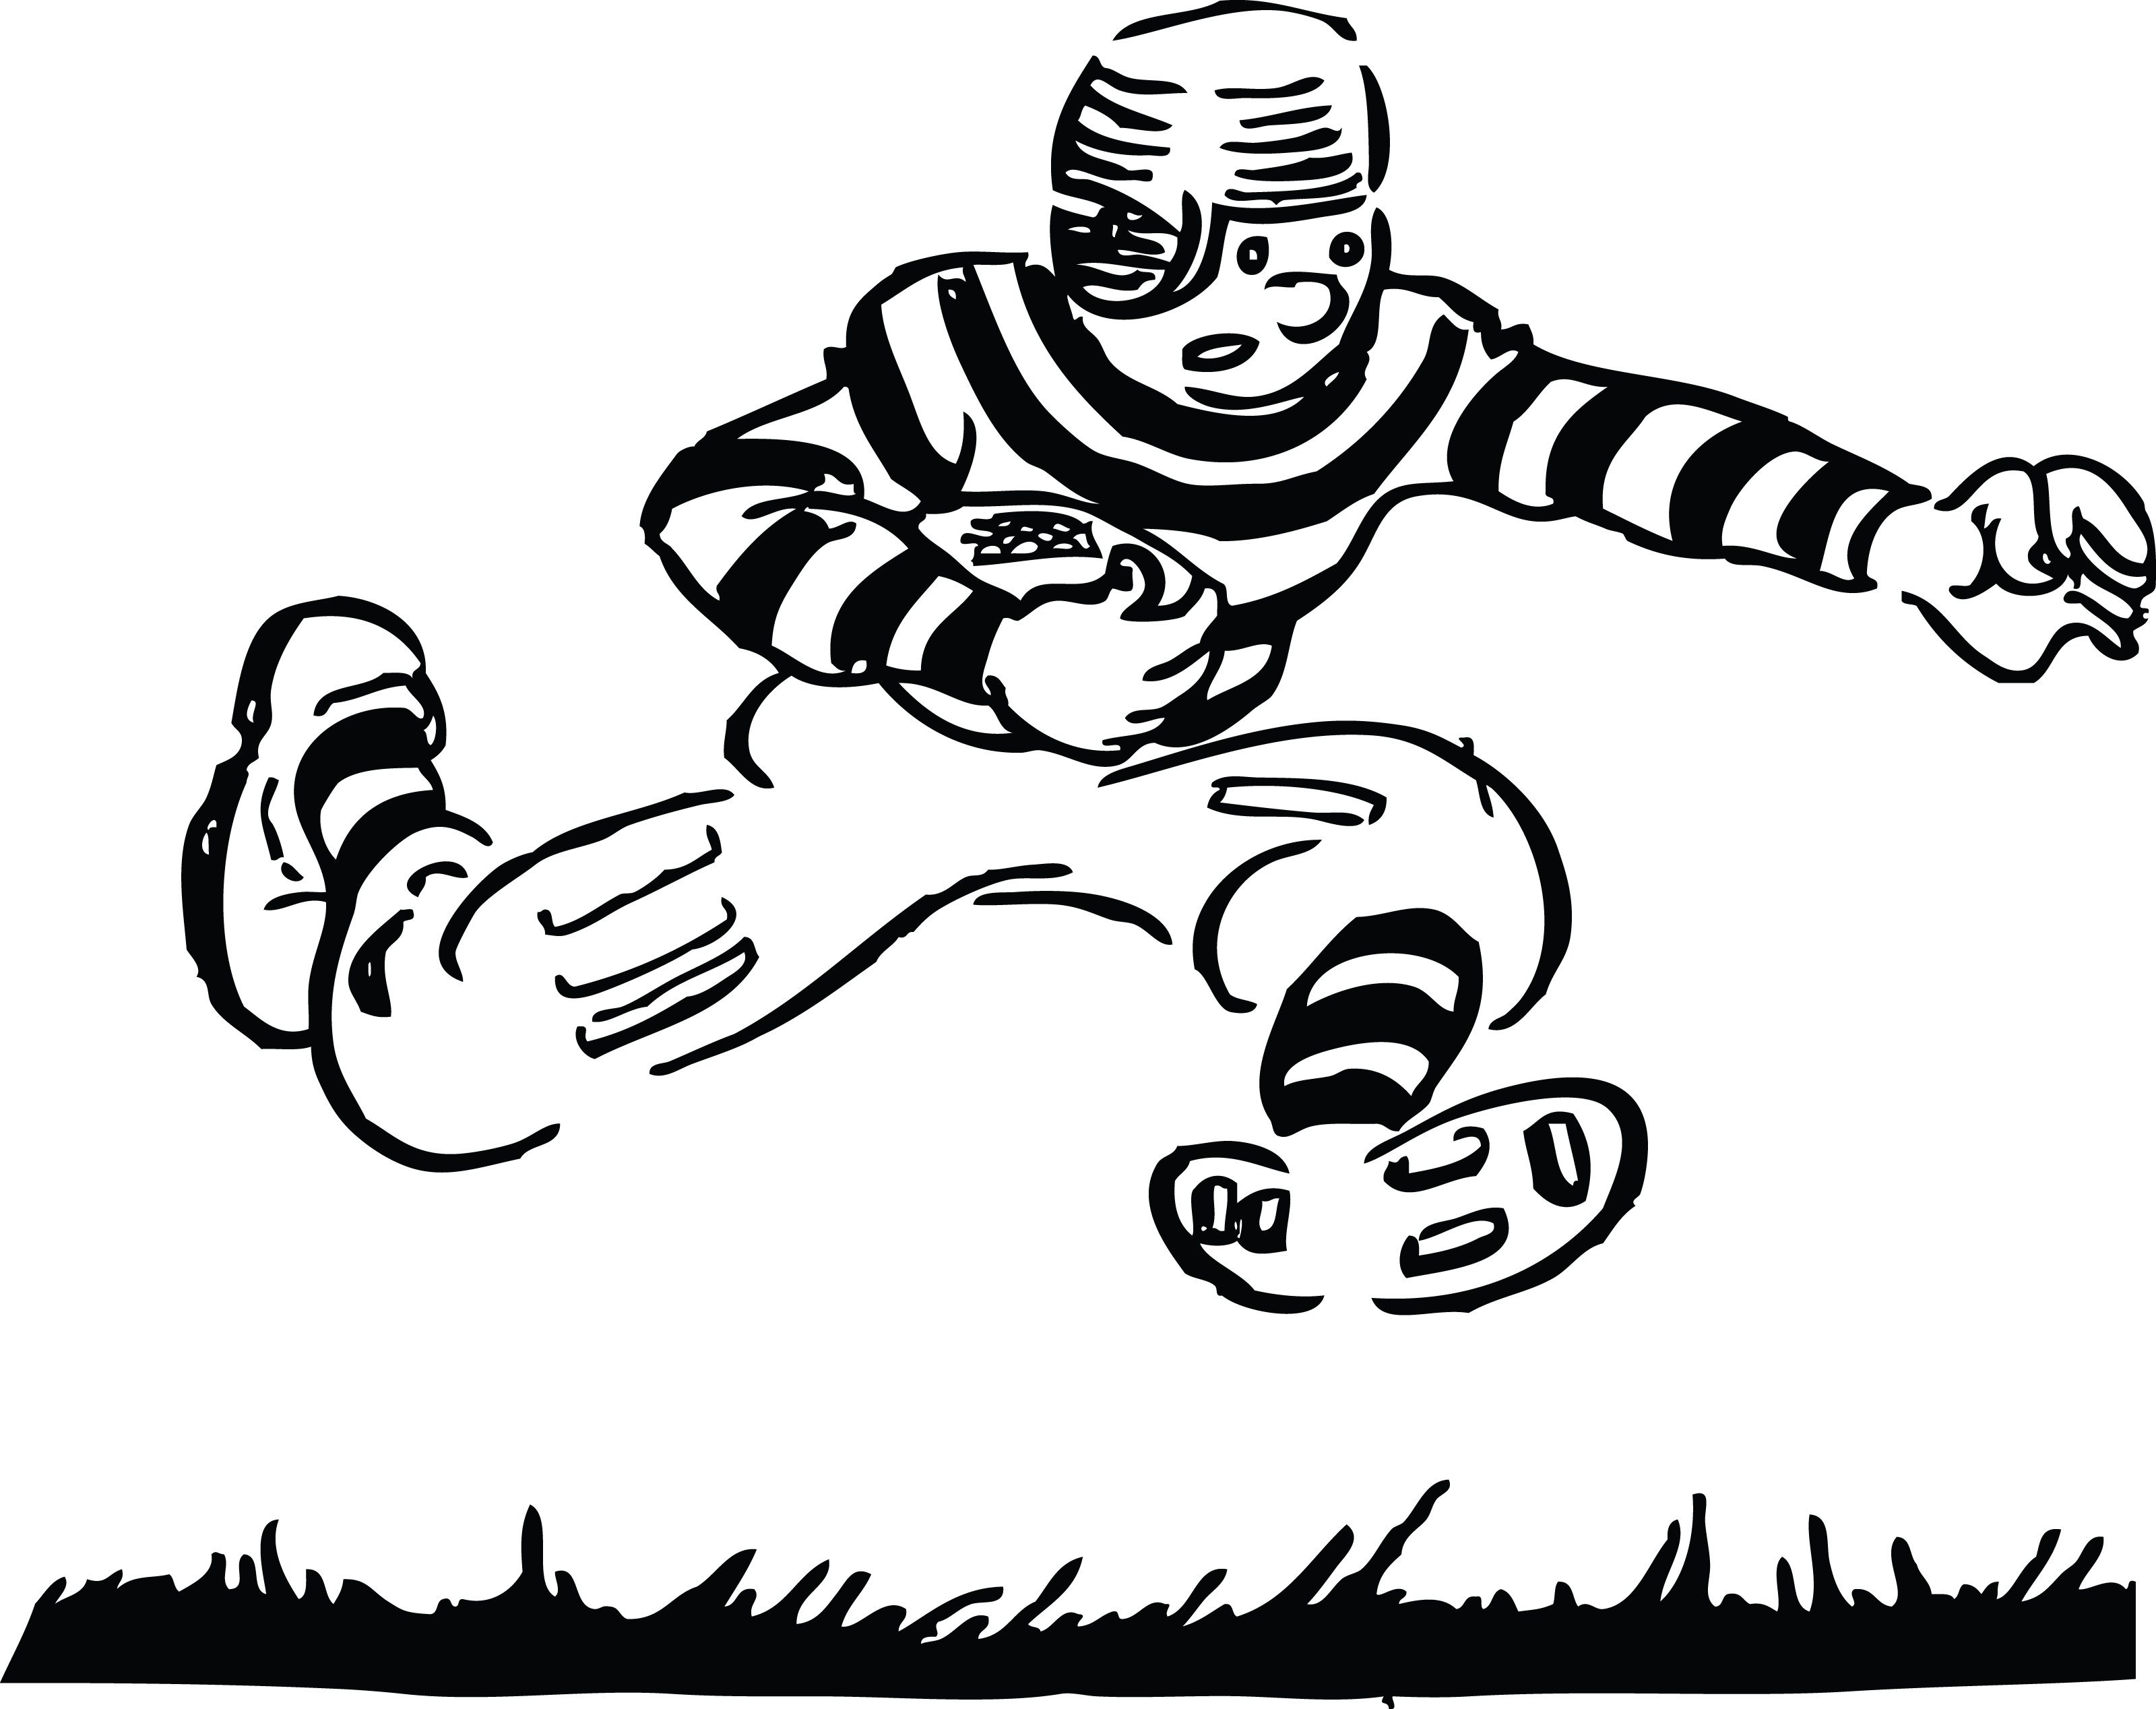 Free Black And White Football Clipart Download Free Clip Art Free Throughout Children Playing Footbal Black And White Football Football Kids Playing Football